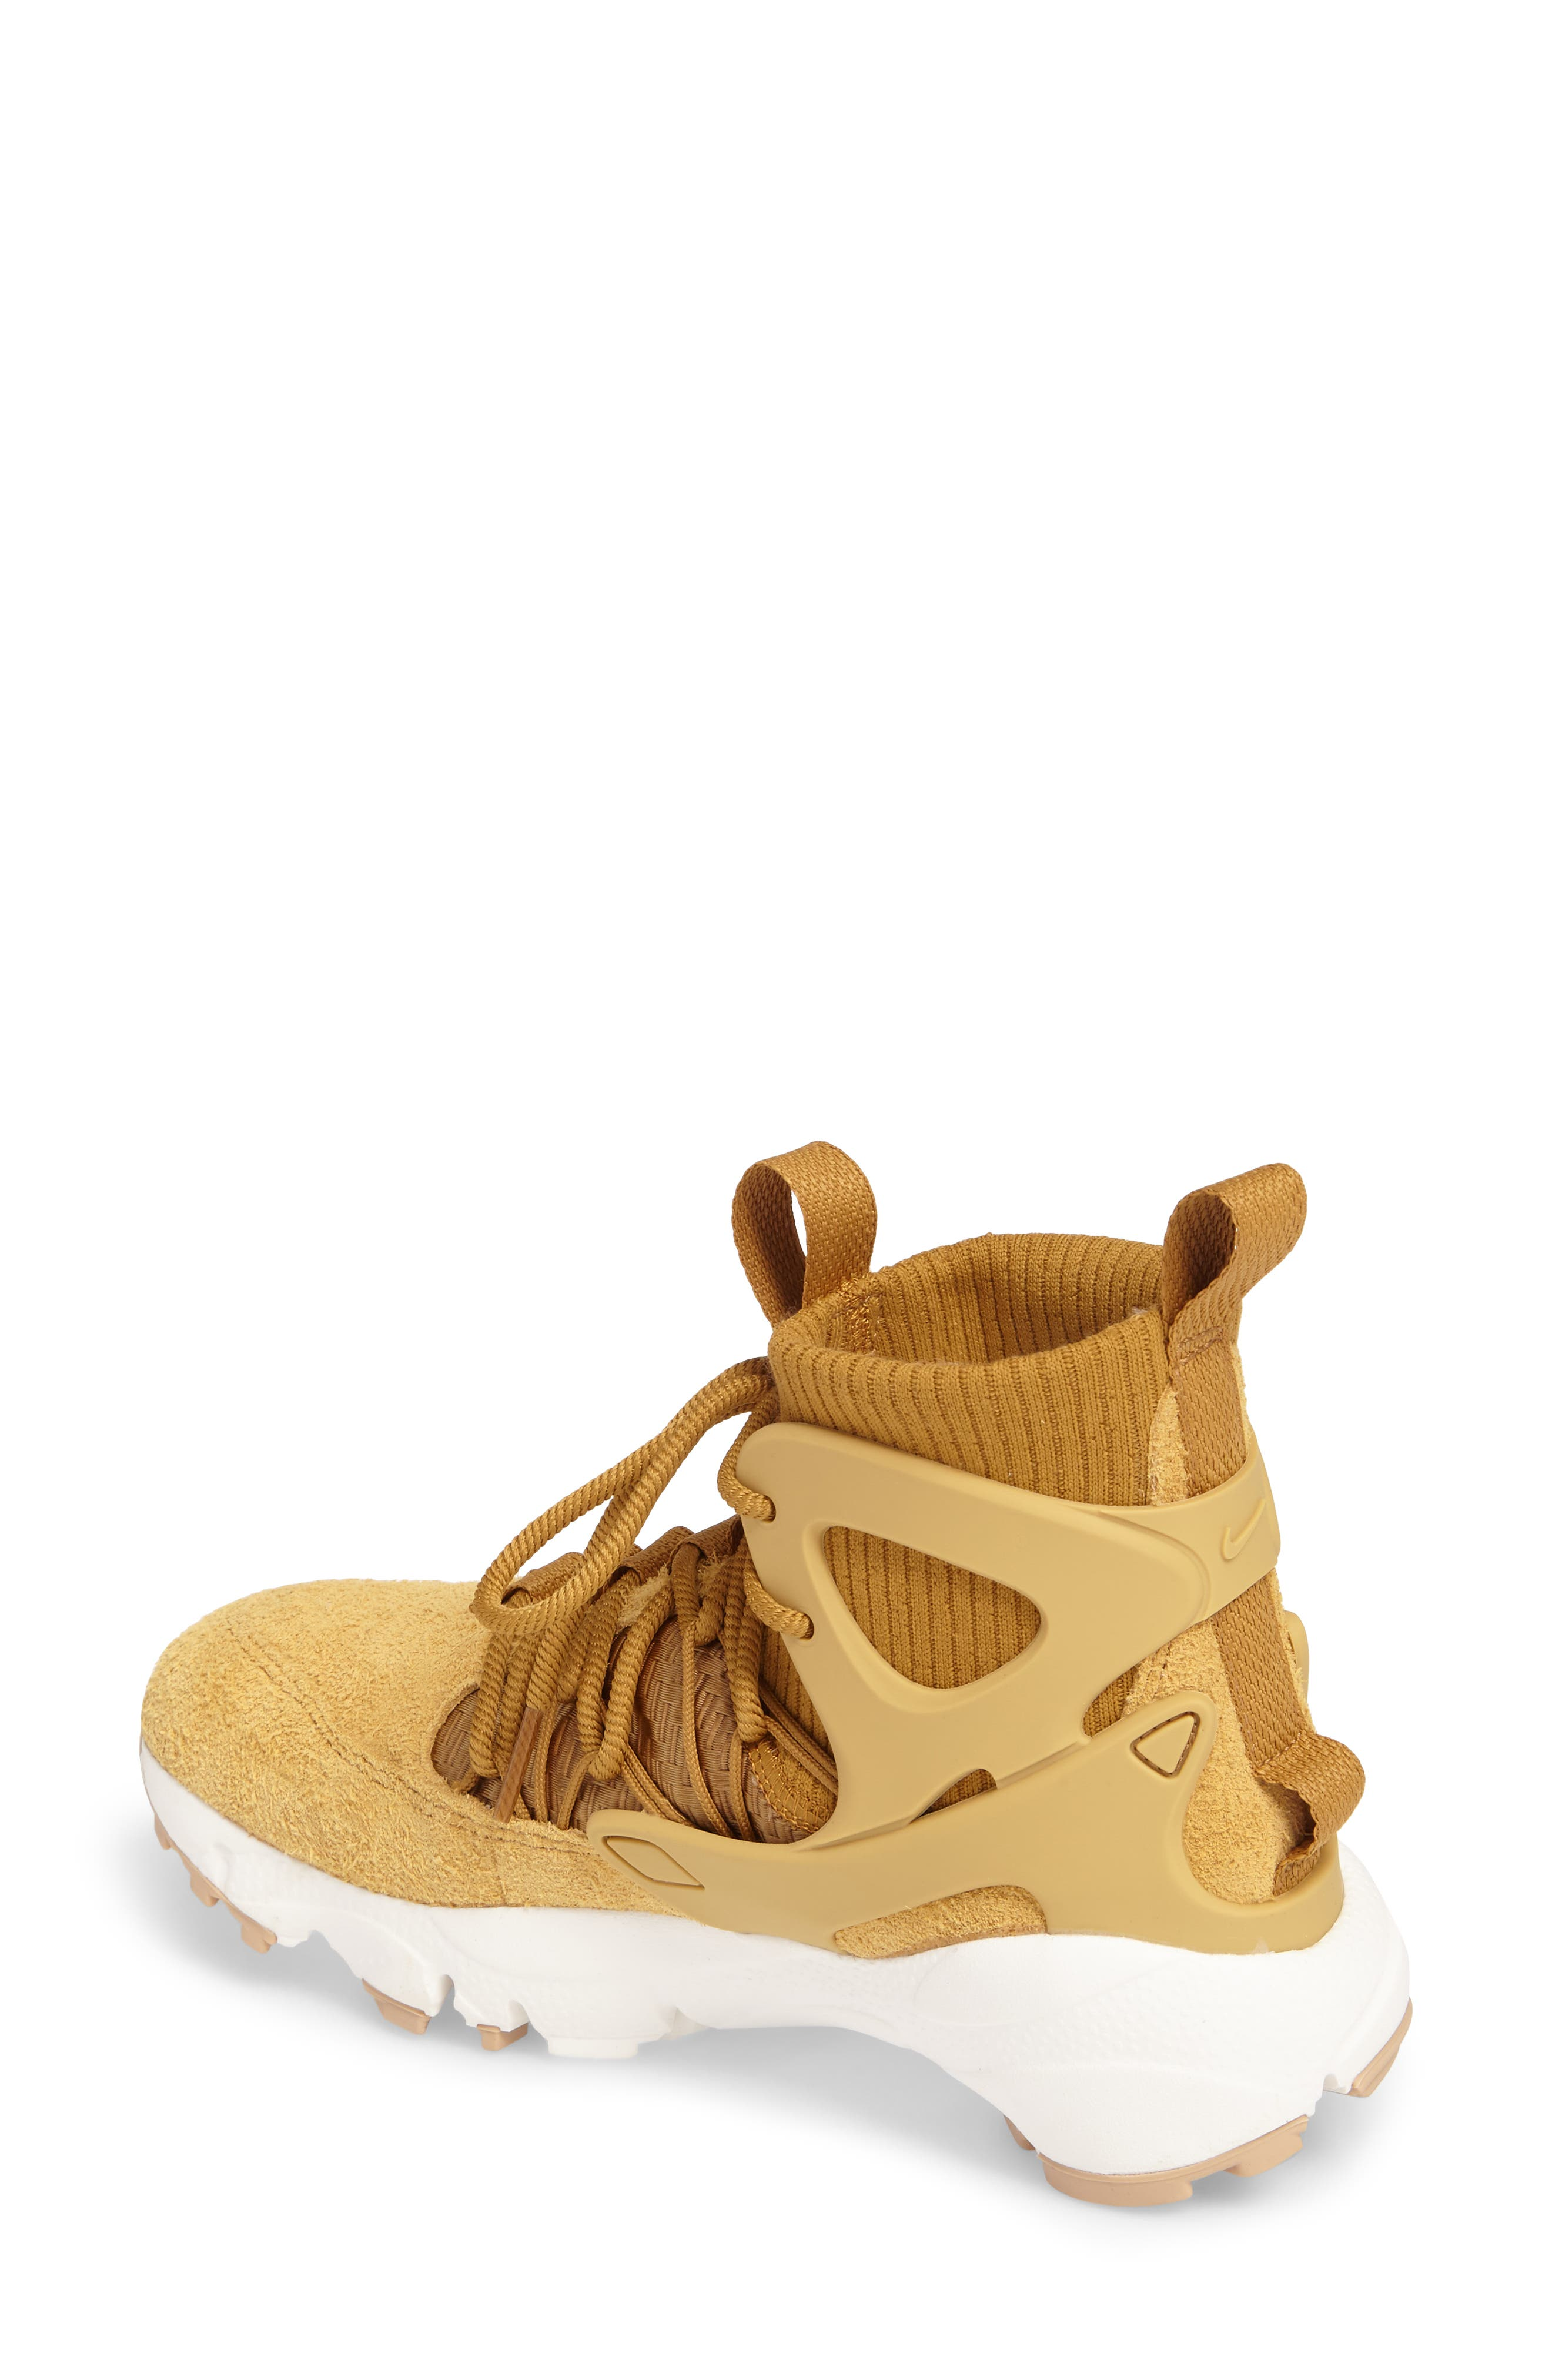 Air Footscape Mid Sneaker Boot,                             Alternate thumbnail 2, color,                             250